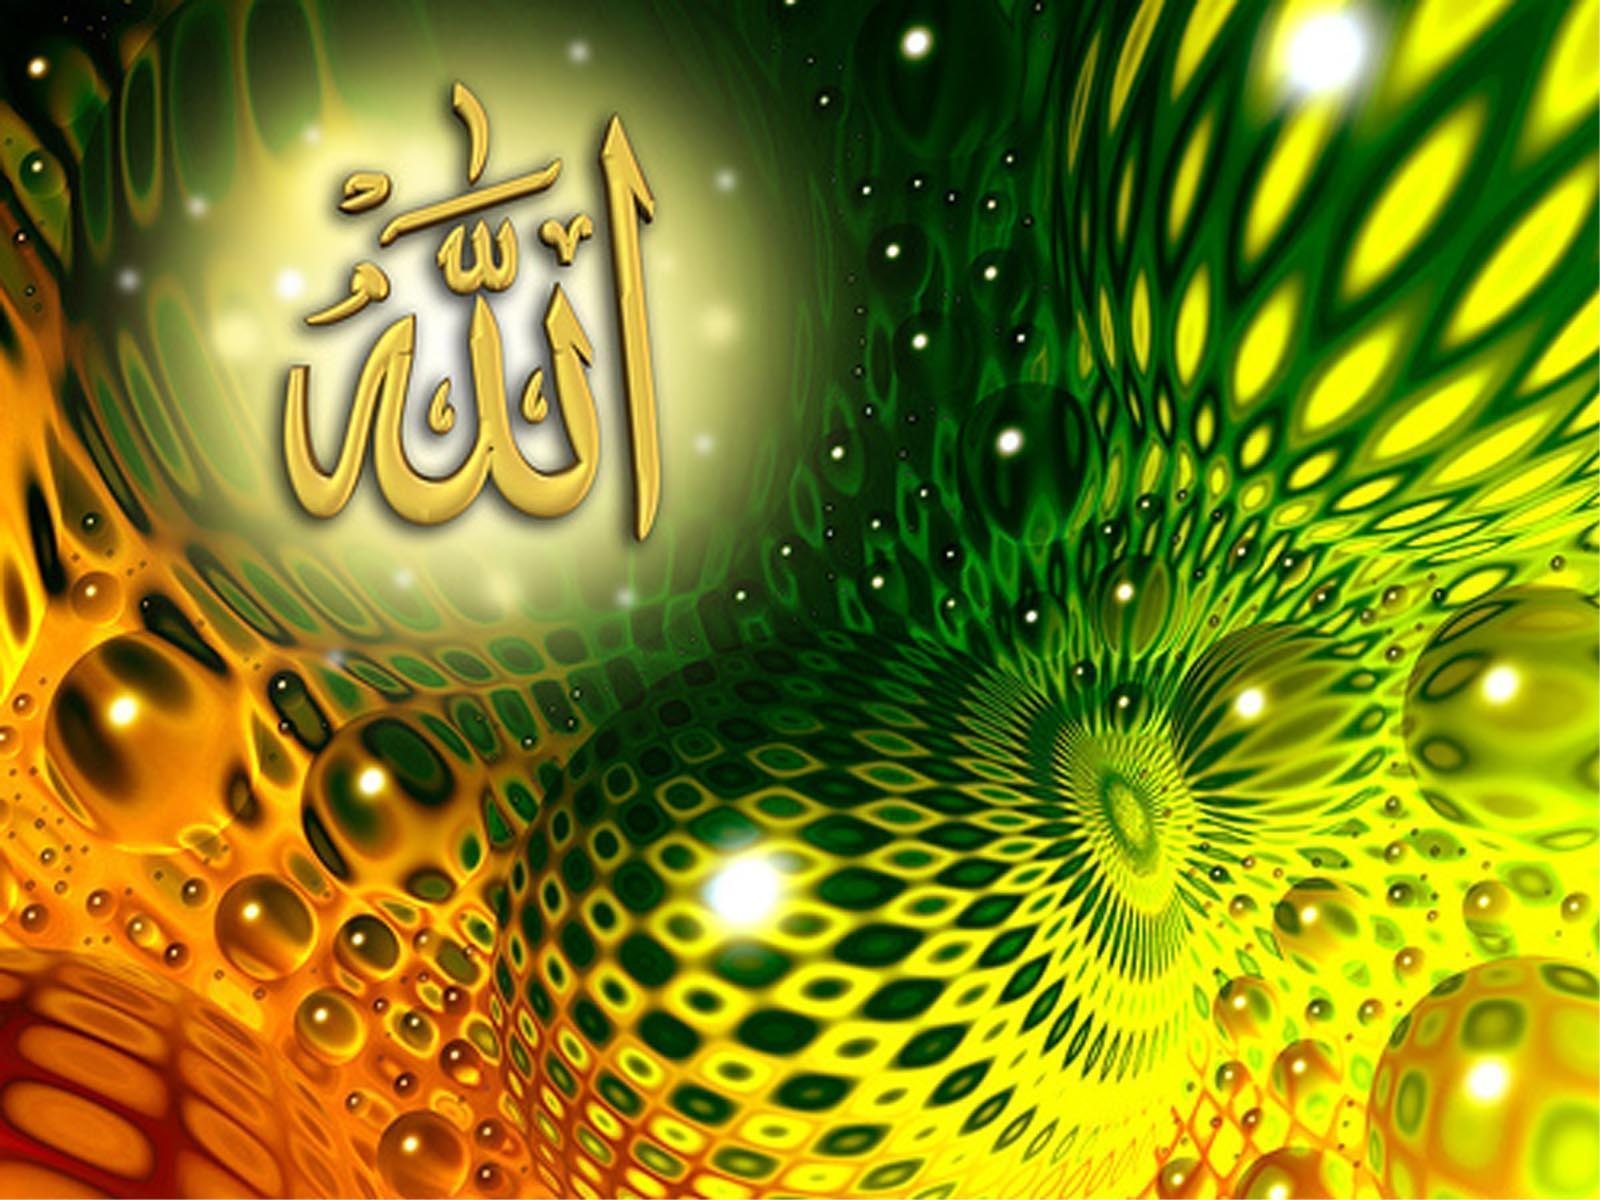 Hd wallpaper name - Allah Wallpapers Hd 2015 Wallpaper Cave